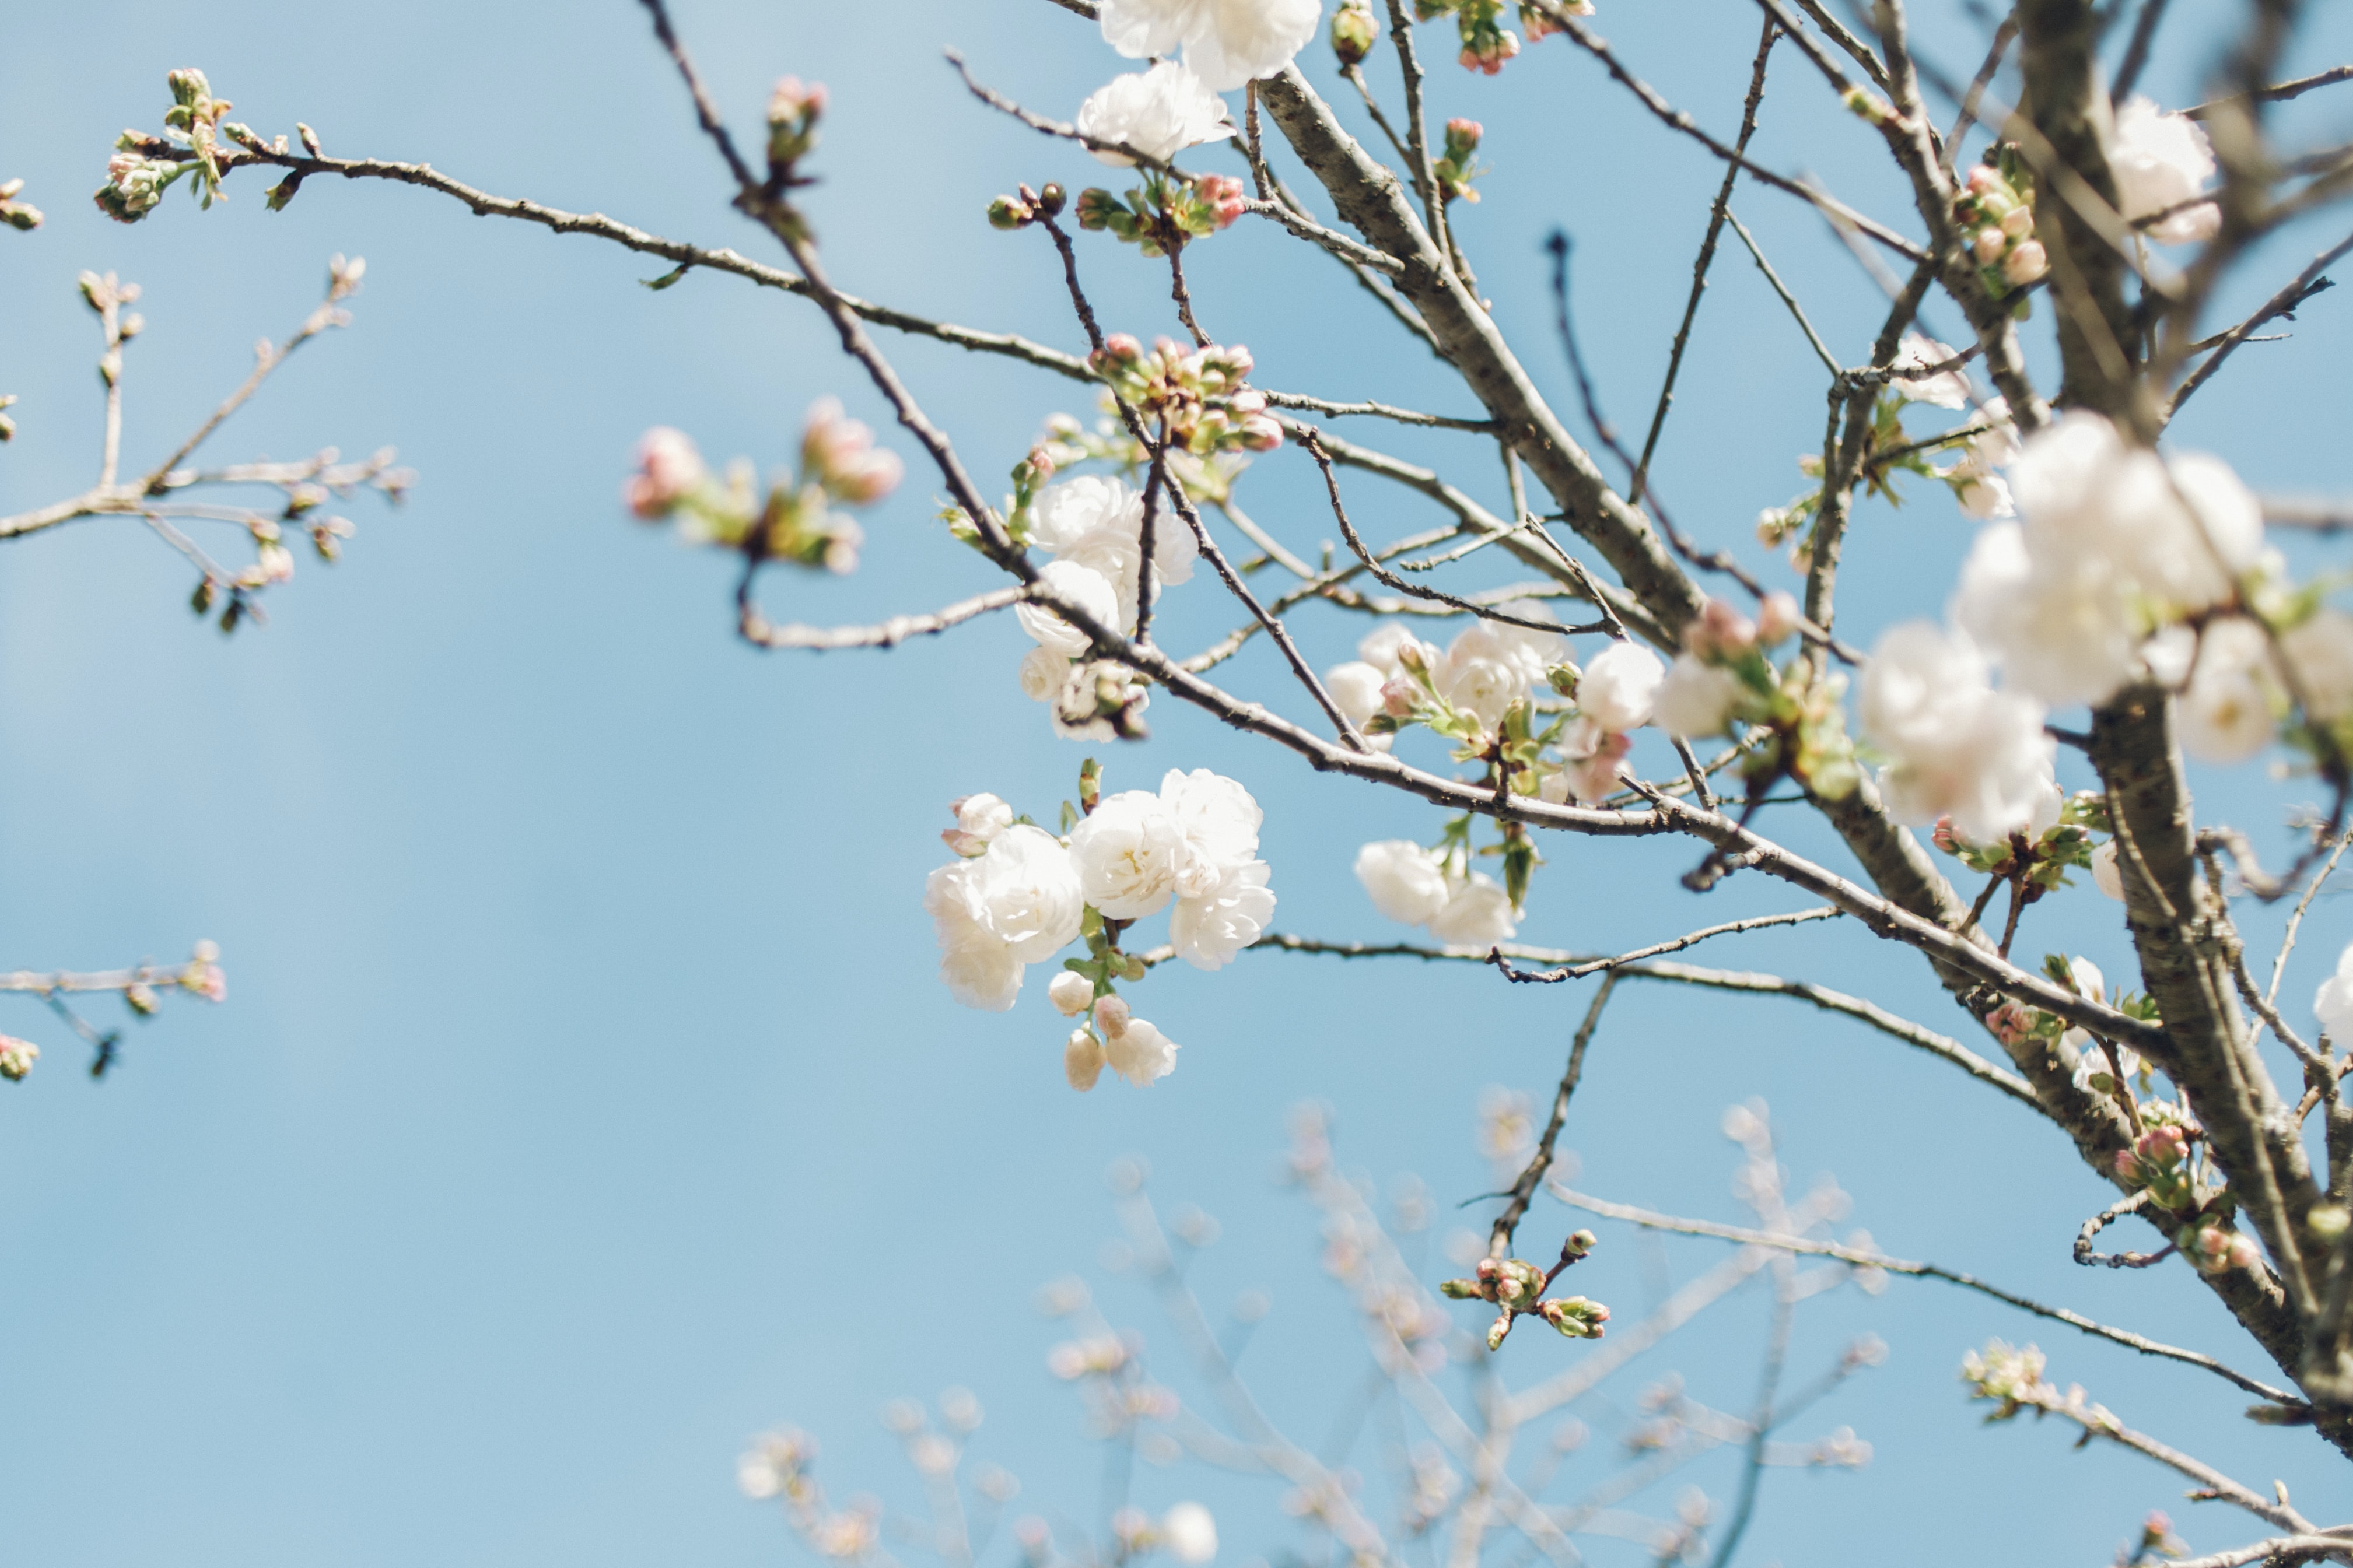 Cherry blossom in bloom on branches with clear blue sky in Spring from below